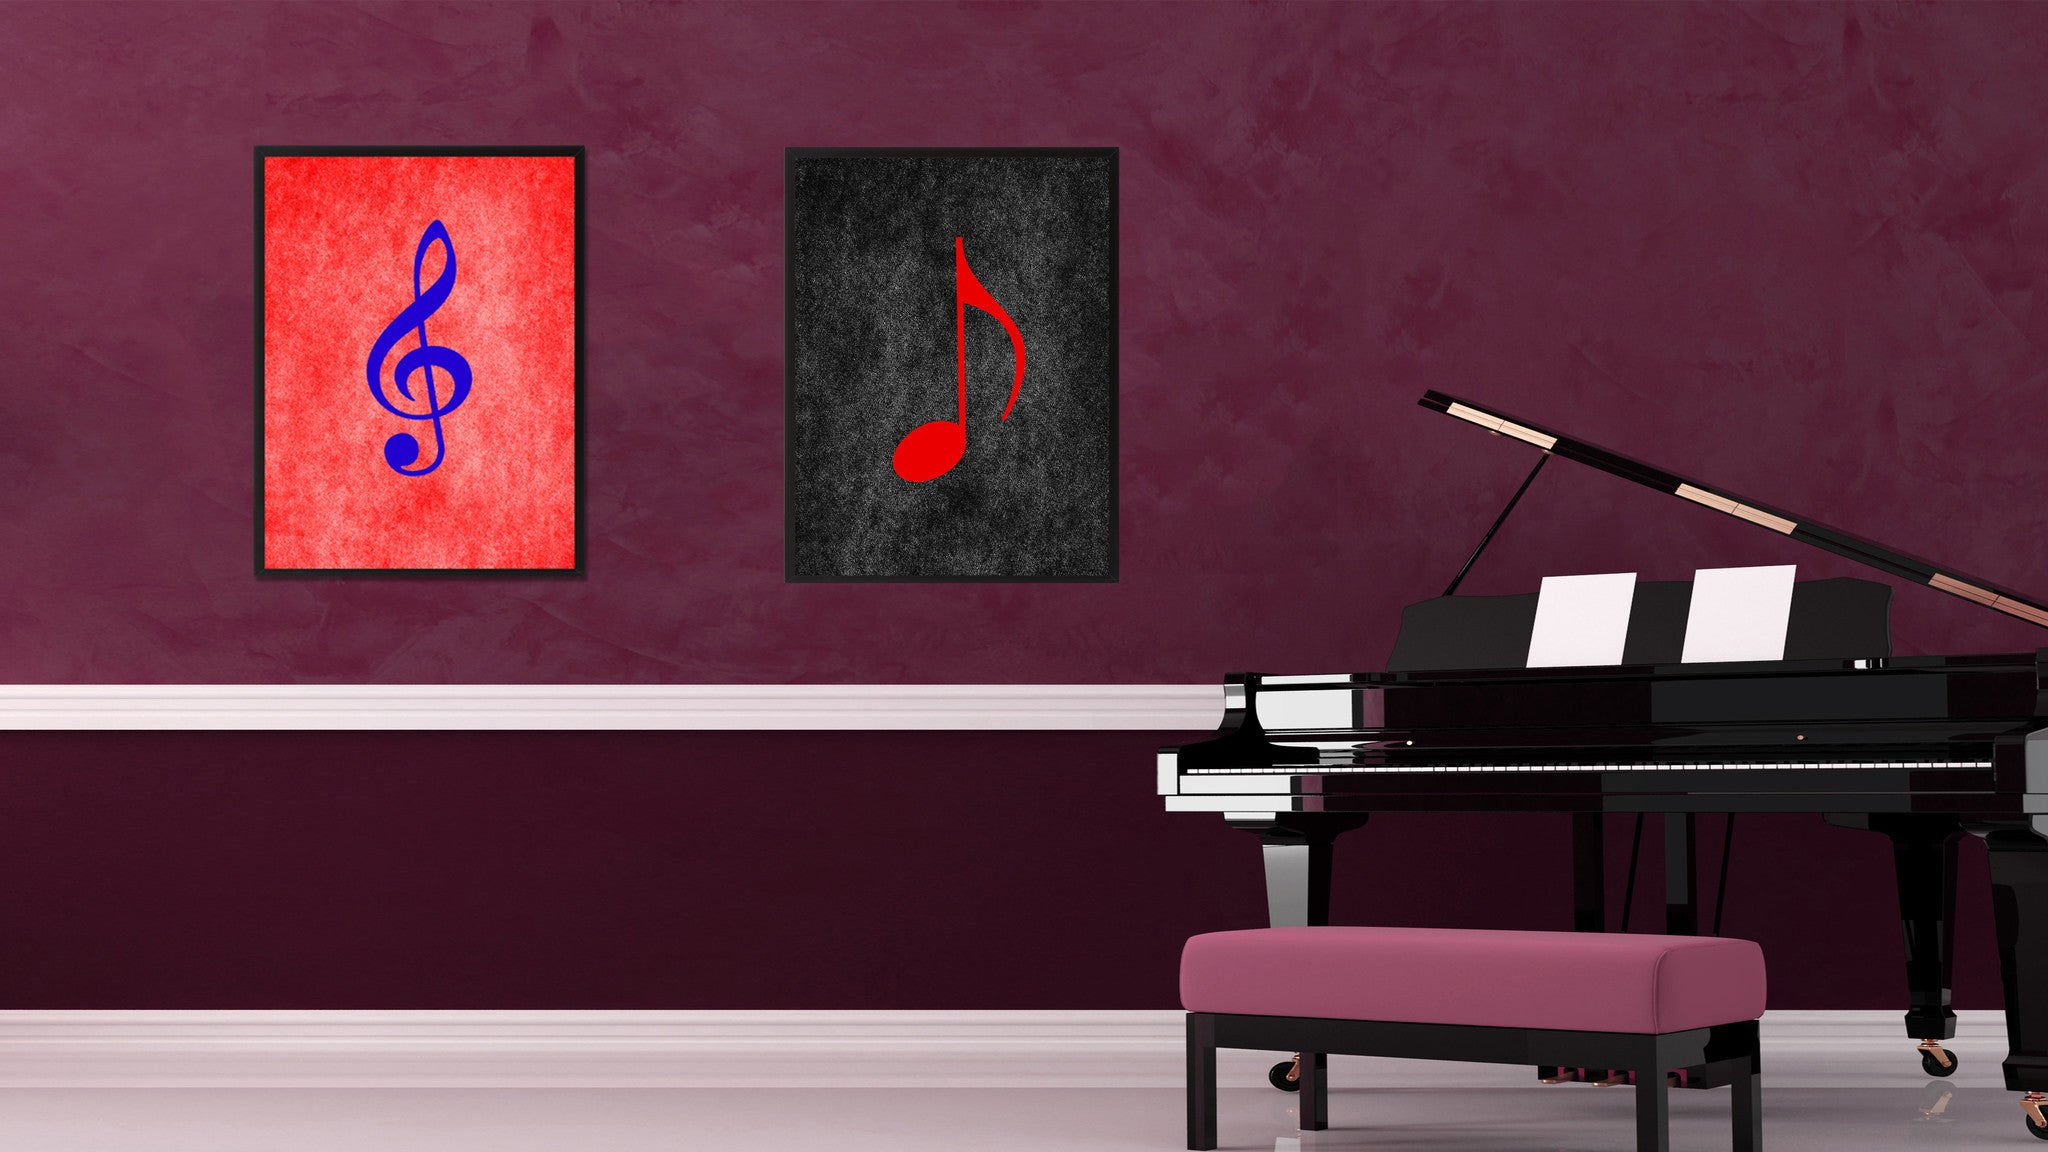 Quaver Music Black Canvas Print Pictures Frames Office Home Décor Wall Art Gifts